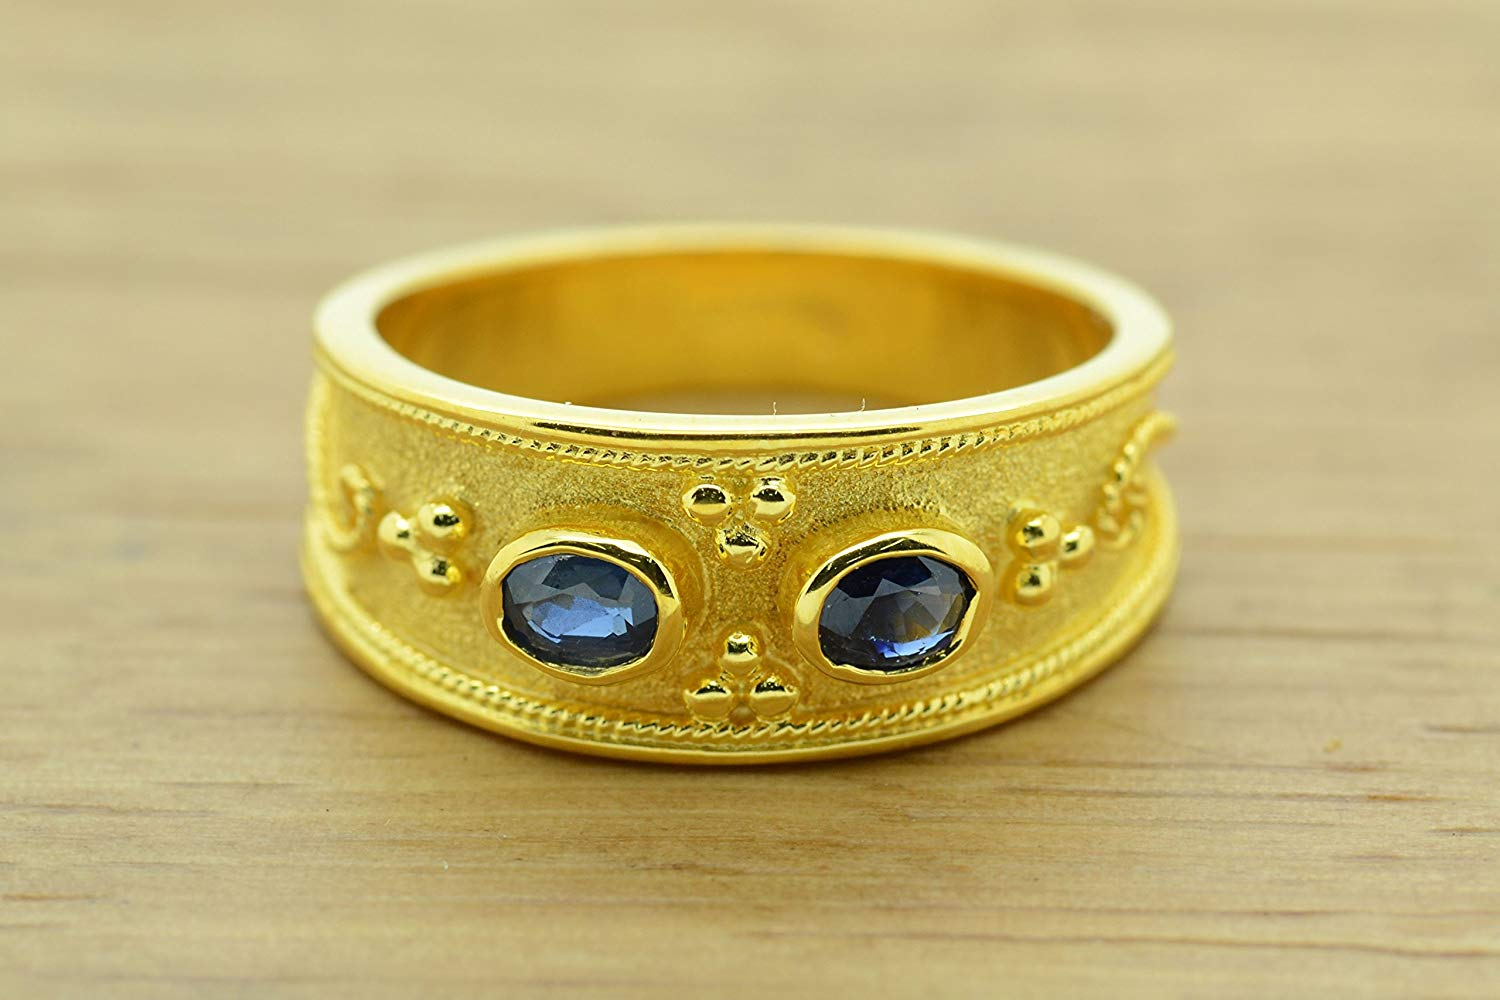 Blue Sapphire Ring Byzantine Style 925 Sterling Silver Greek Handmade Art 22K Gold Plated, CZ Band Ring, Sterling Silver Ring, Byzantine Ring, Greek Jewelry, Luxury Ring, Medieval Ring, Elegant Sterling Silver Ring, cubic zirconia Ring